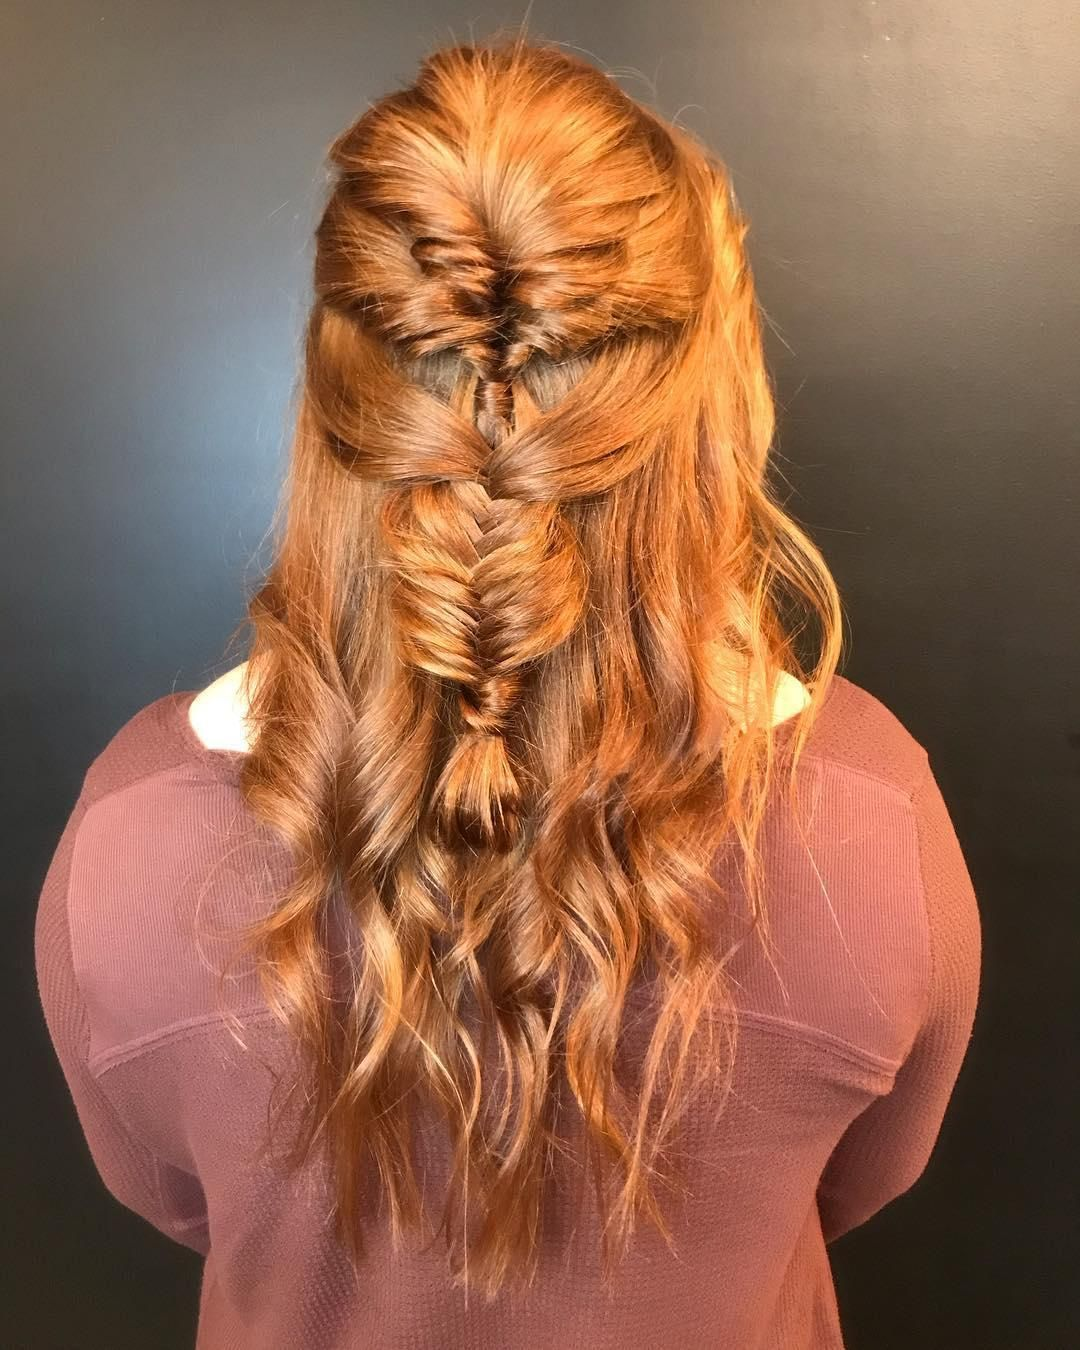 Wedding Hair Style Girl Wedding Hair Stylists Near Me Best Wedding Hair Styles Wedding Hair And Mak In 2020 Natural Hair Styles Long Hair Styles Medium Hair Styles